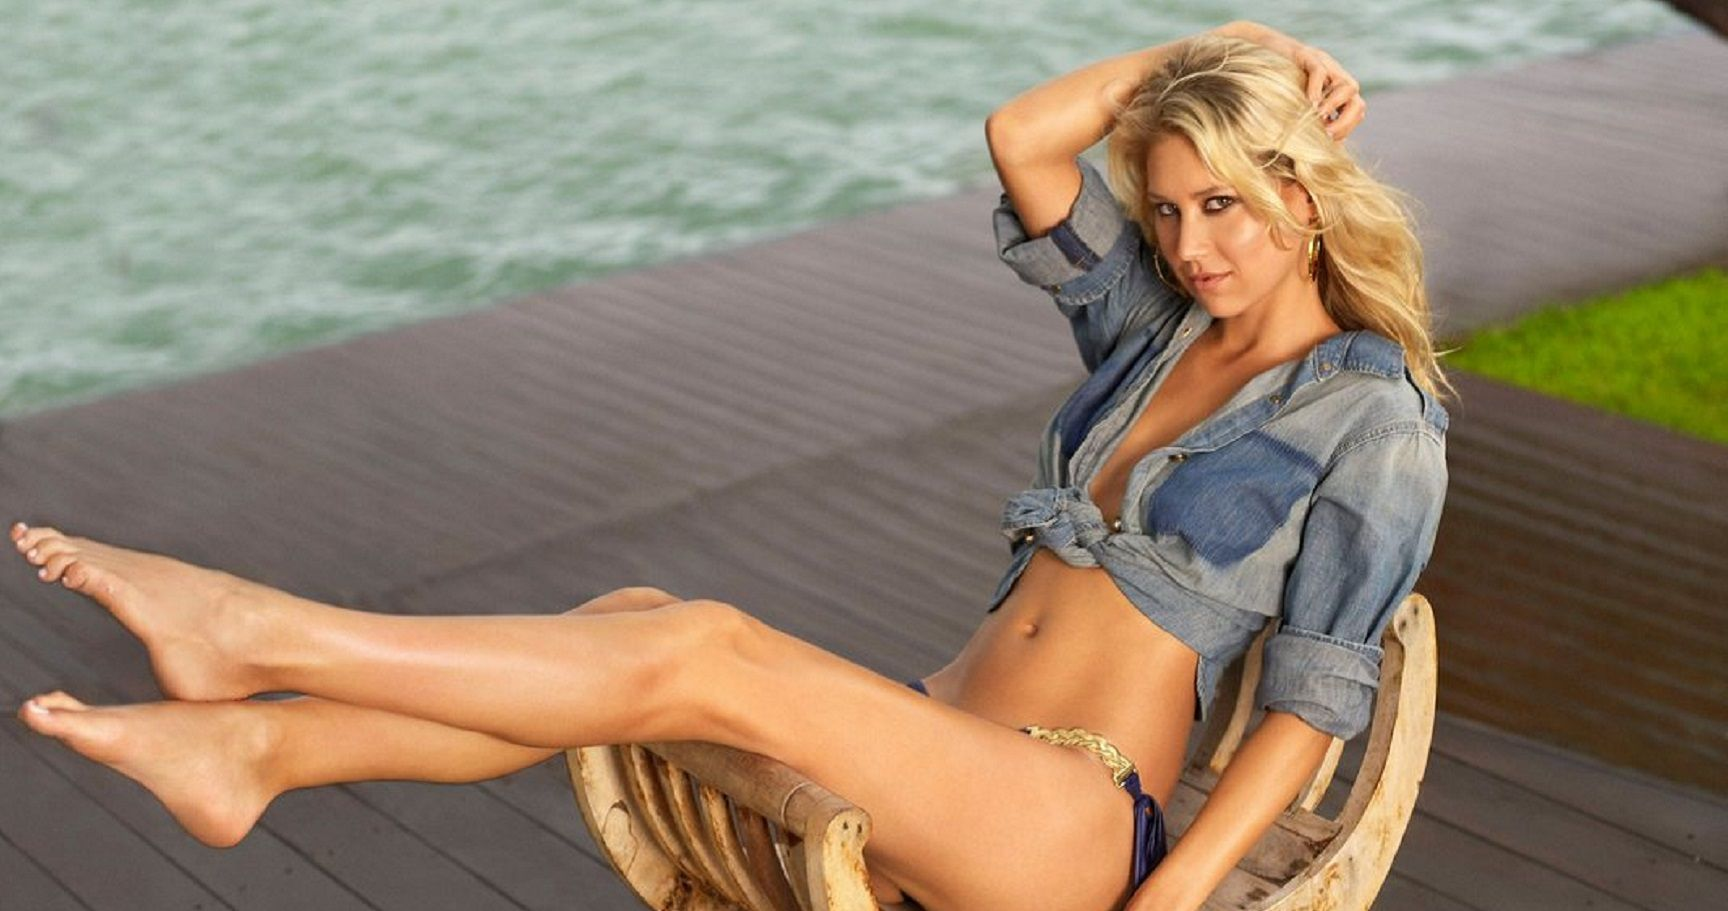 top 20 hottest women tennis players of all time | thesportster